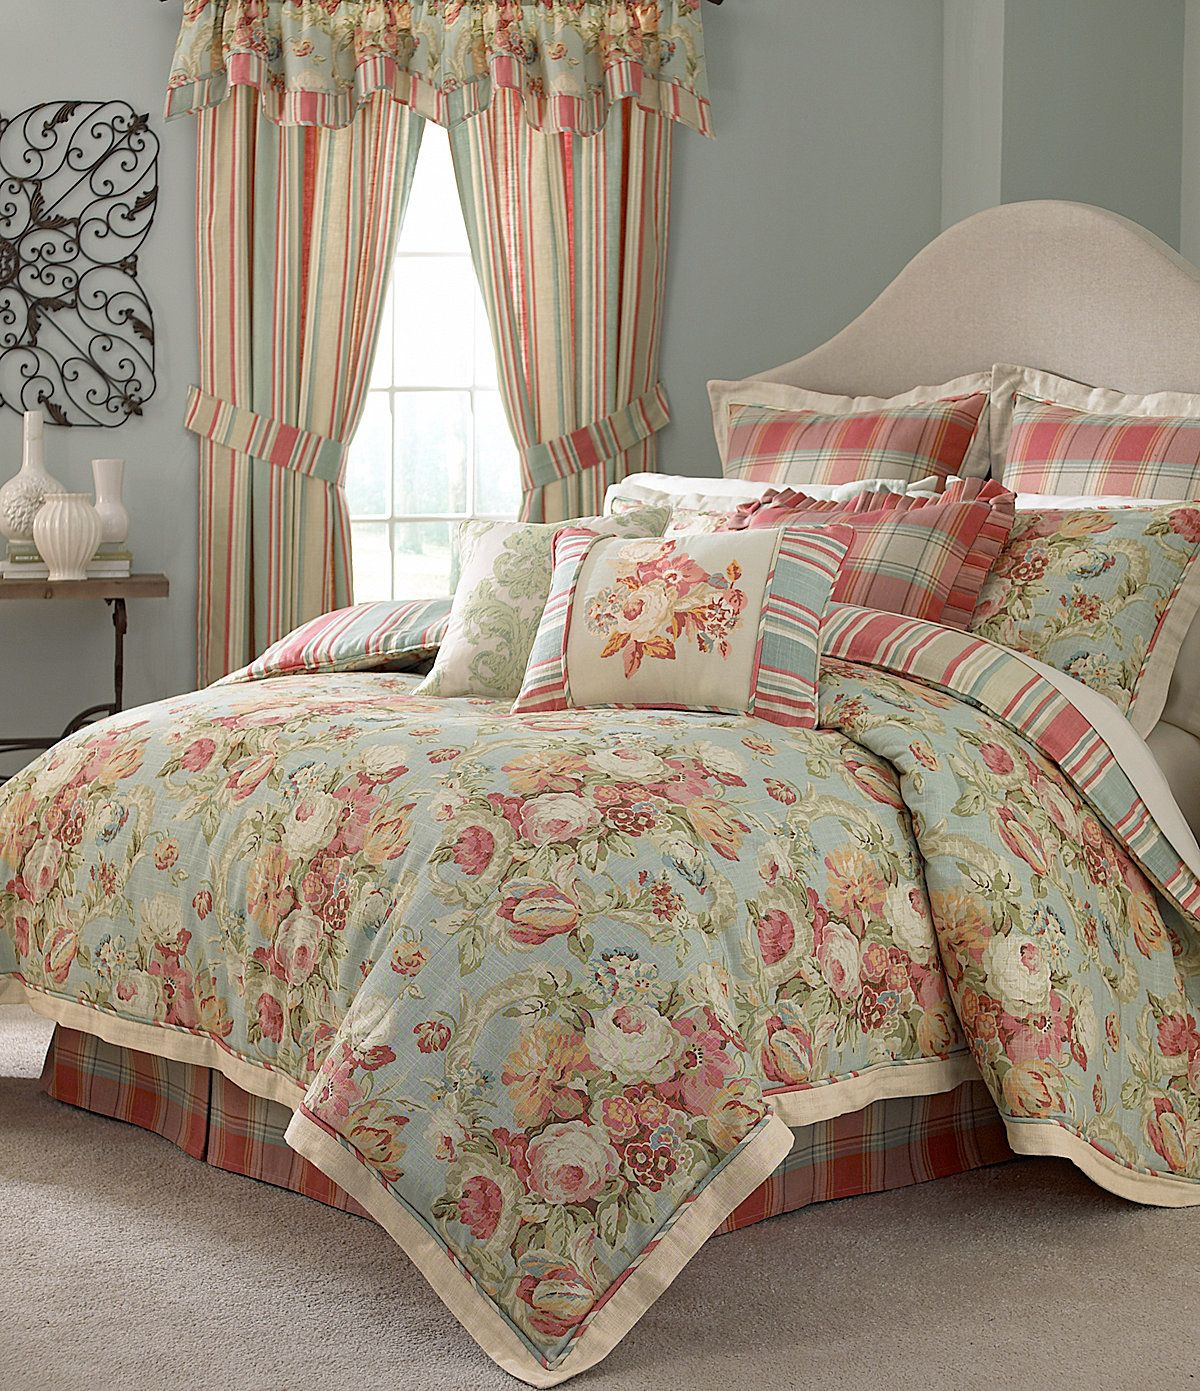 Waverly Spring Bling Bedding Collection Bedrooms & Comforters